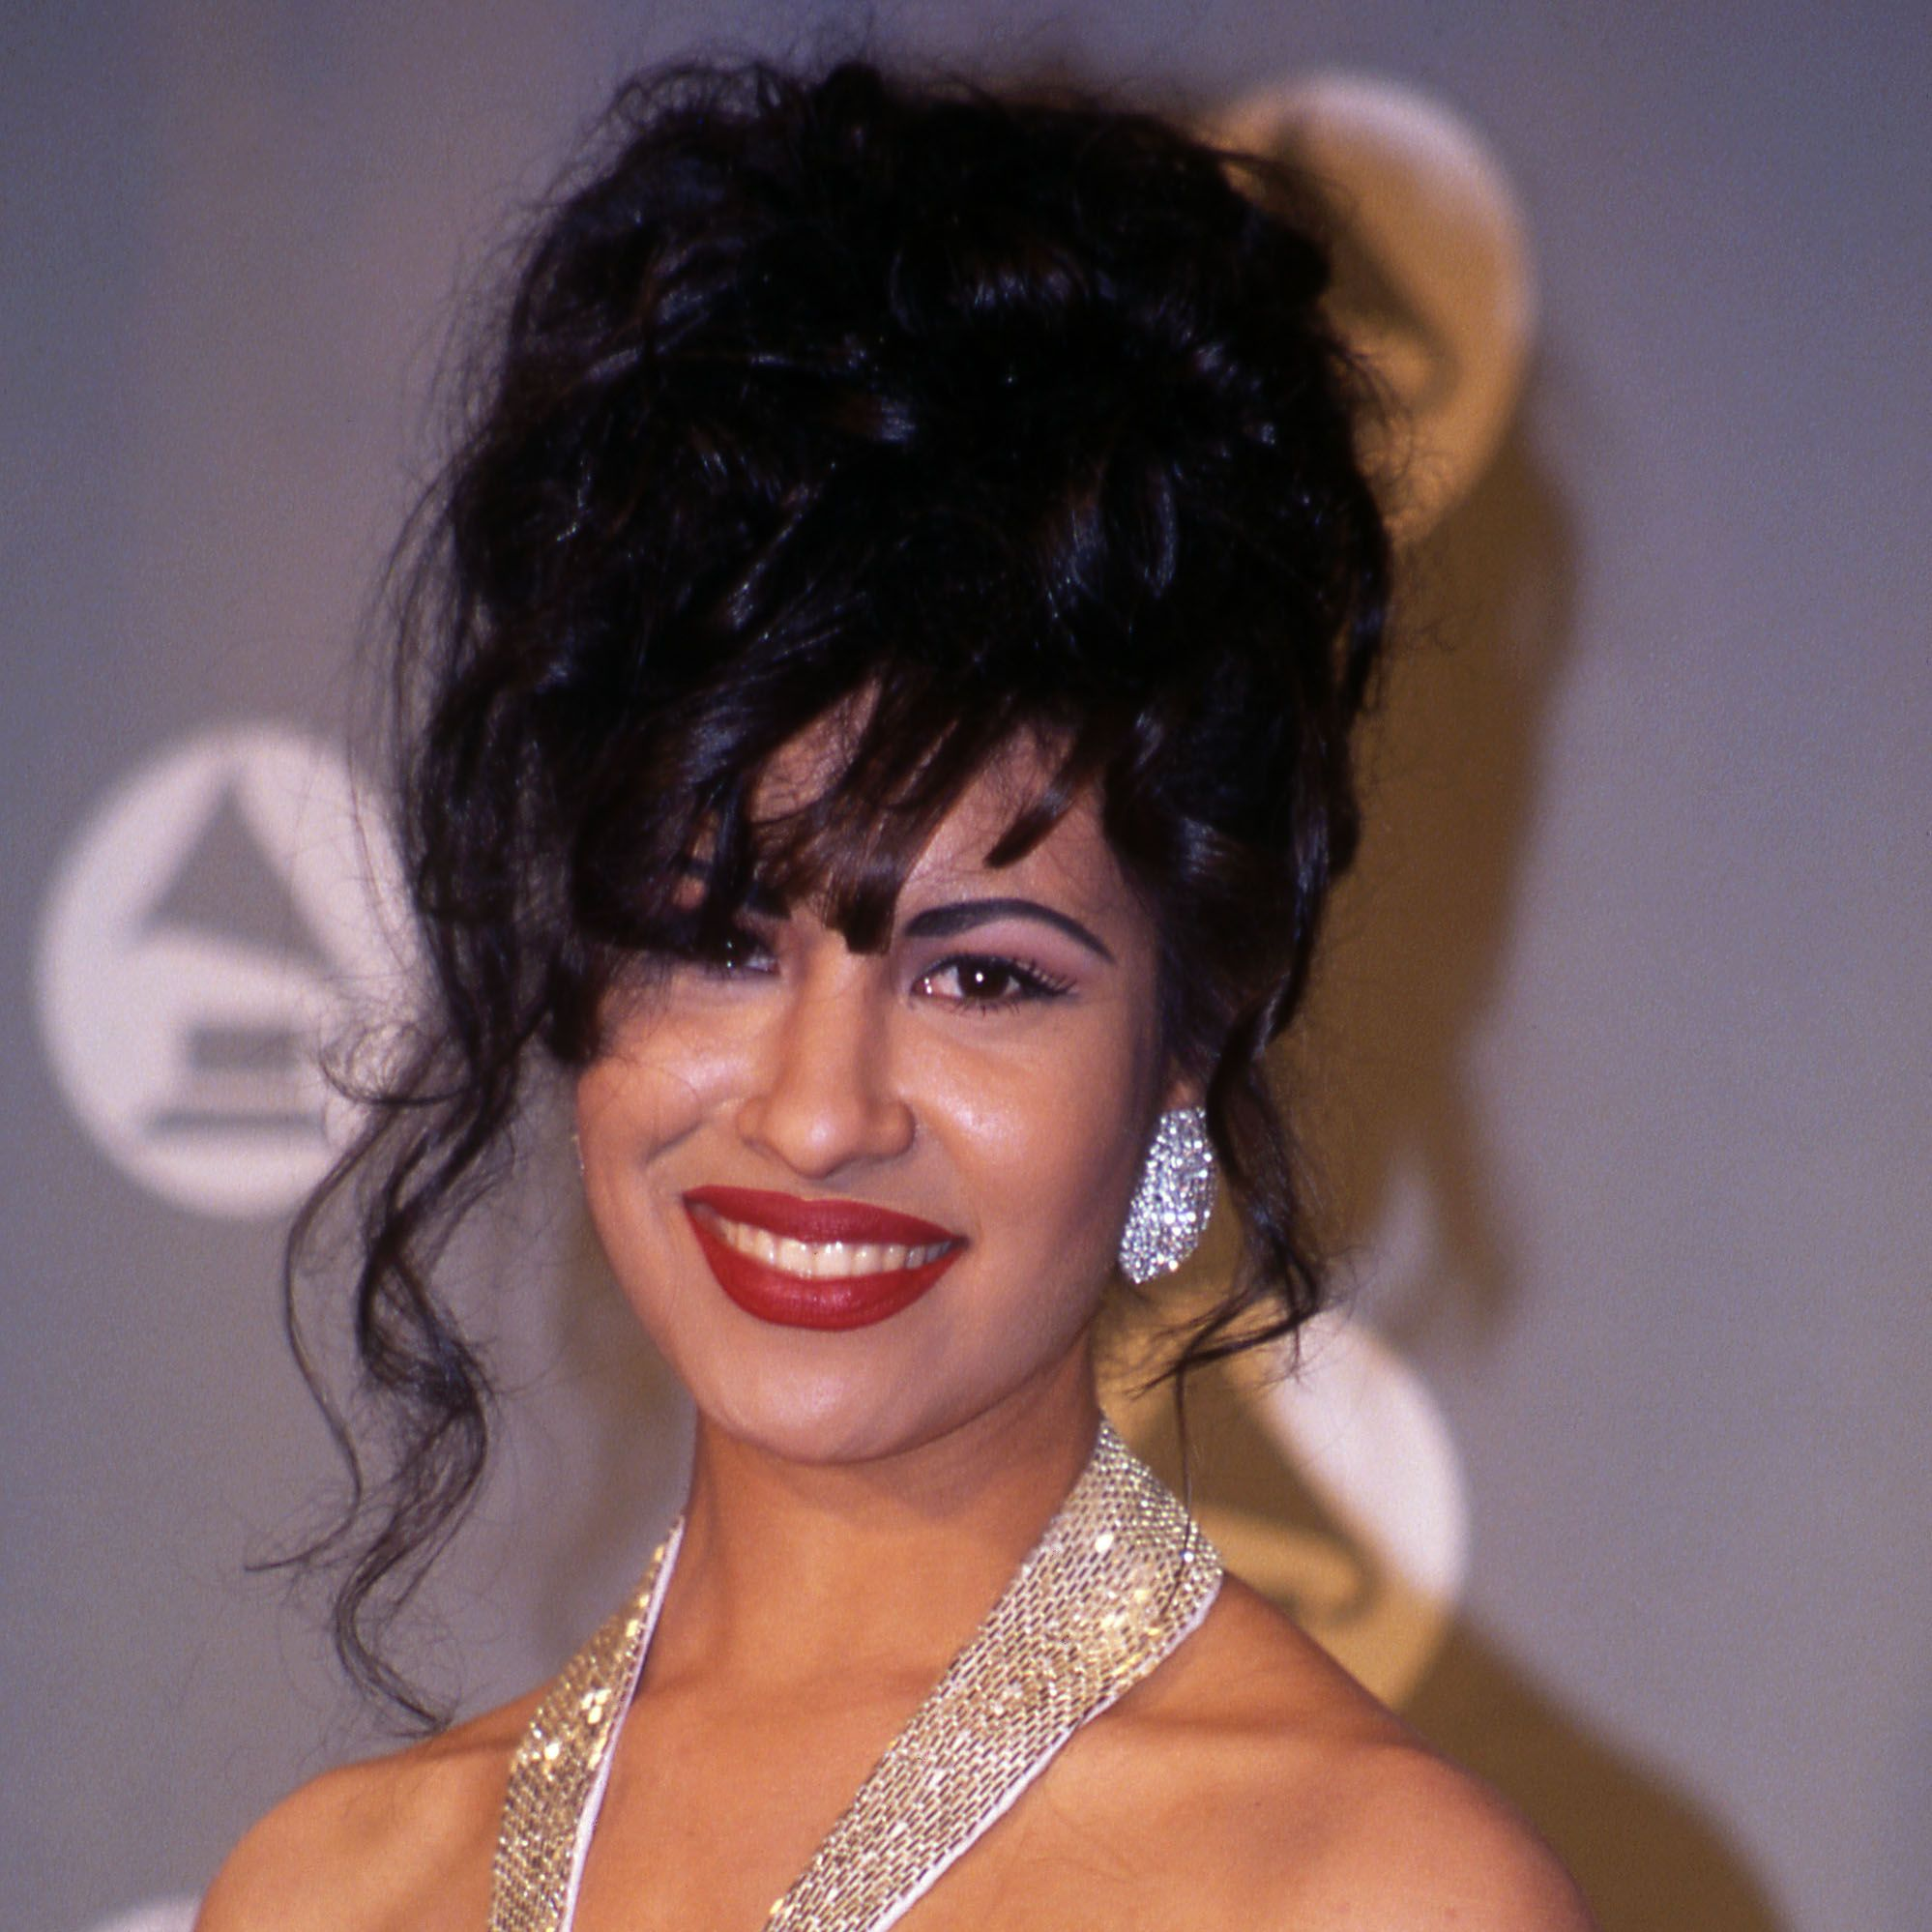 A Scripted Series About Selena Quintanilla Is Coming to Netflix